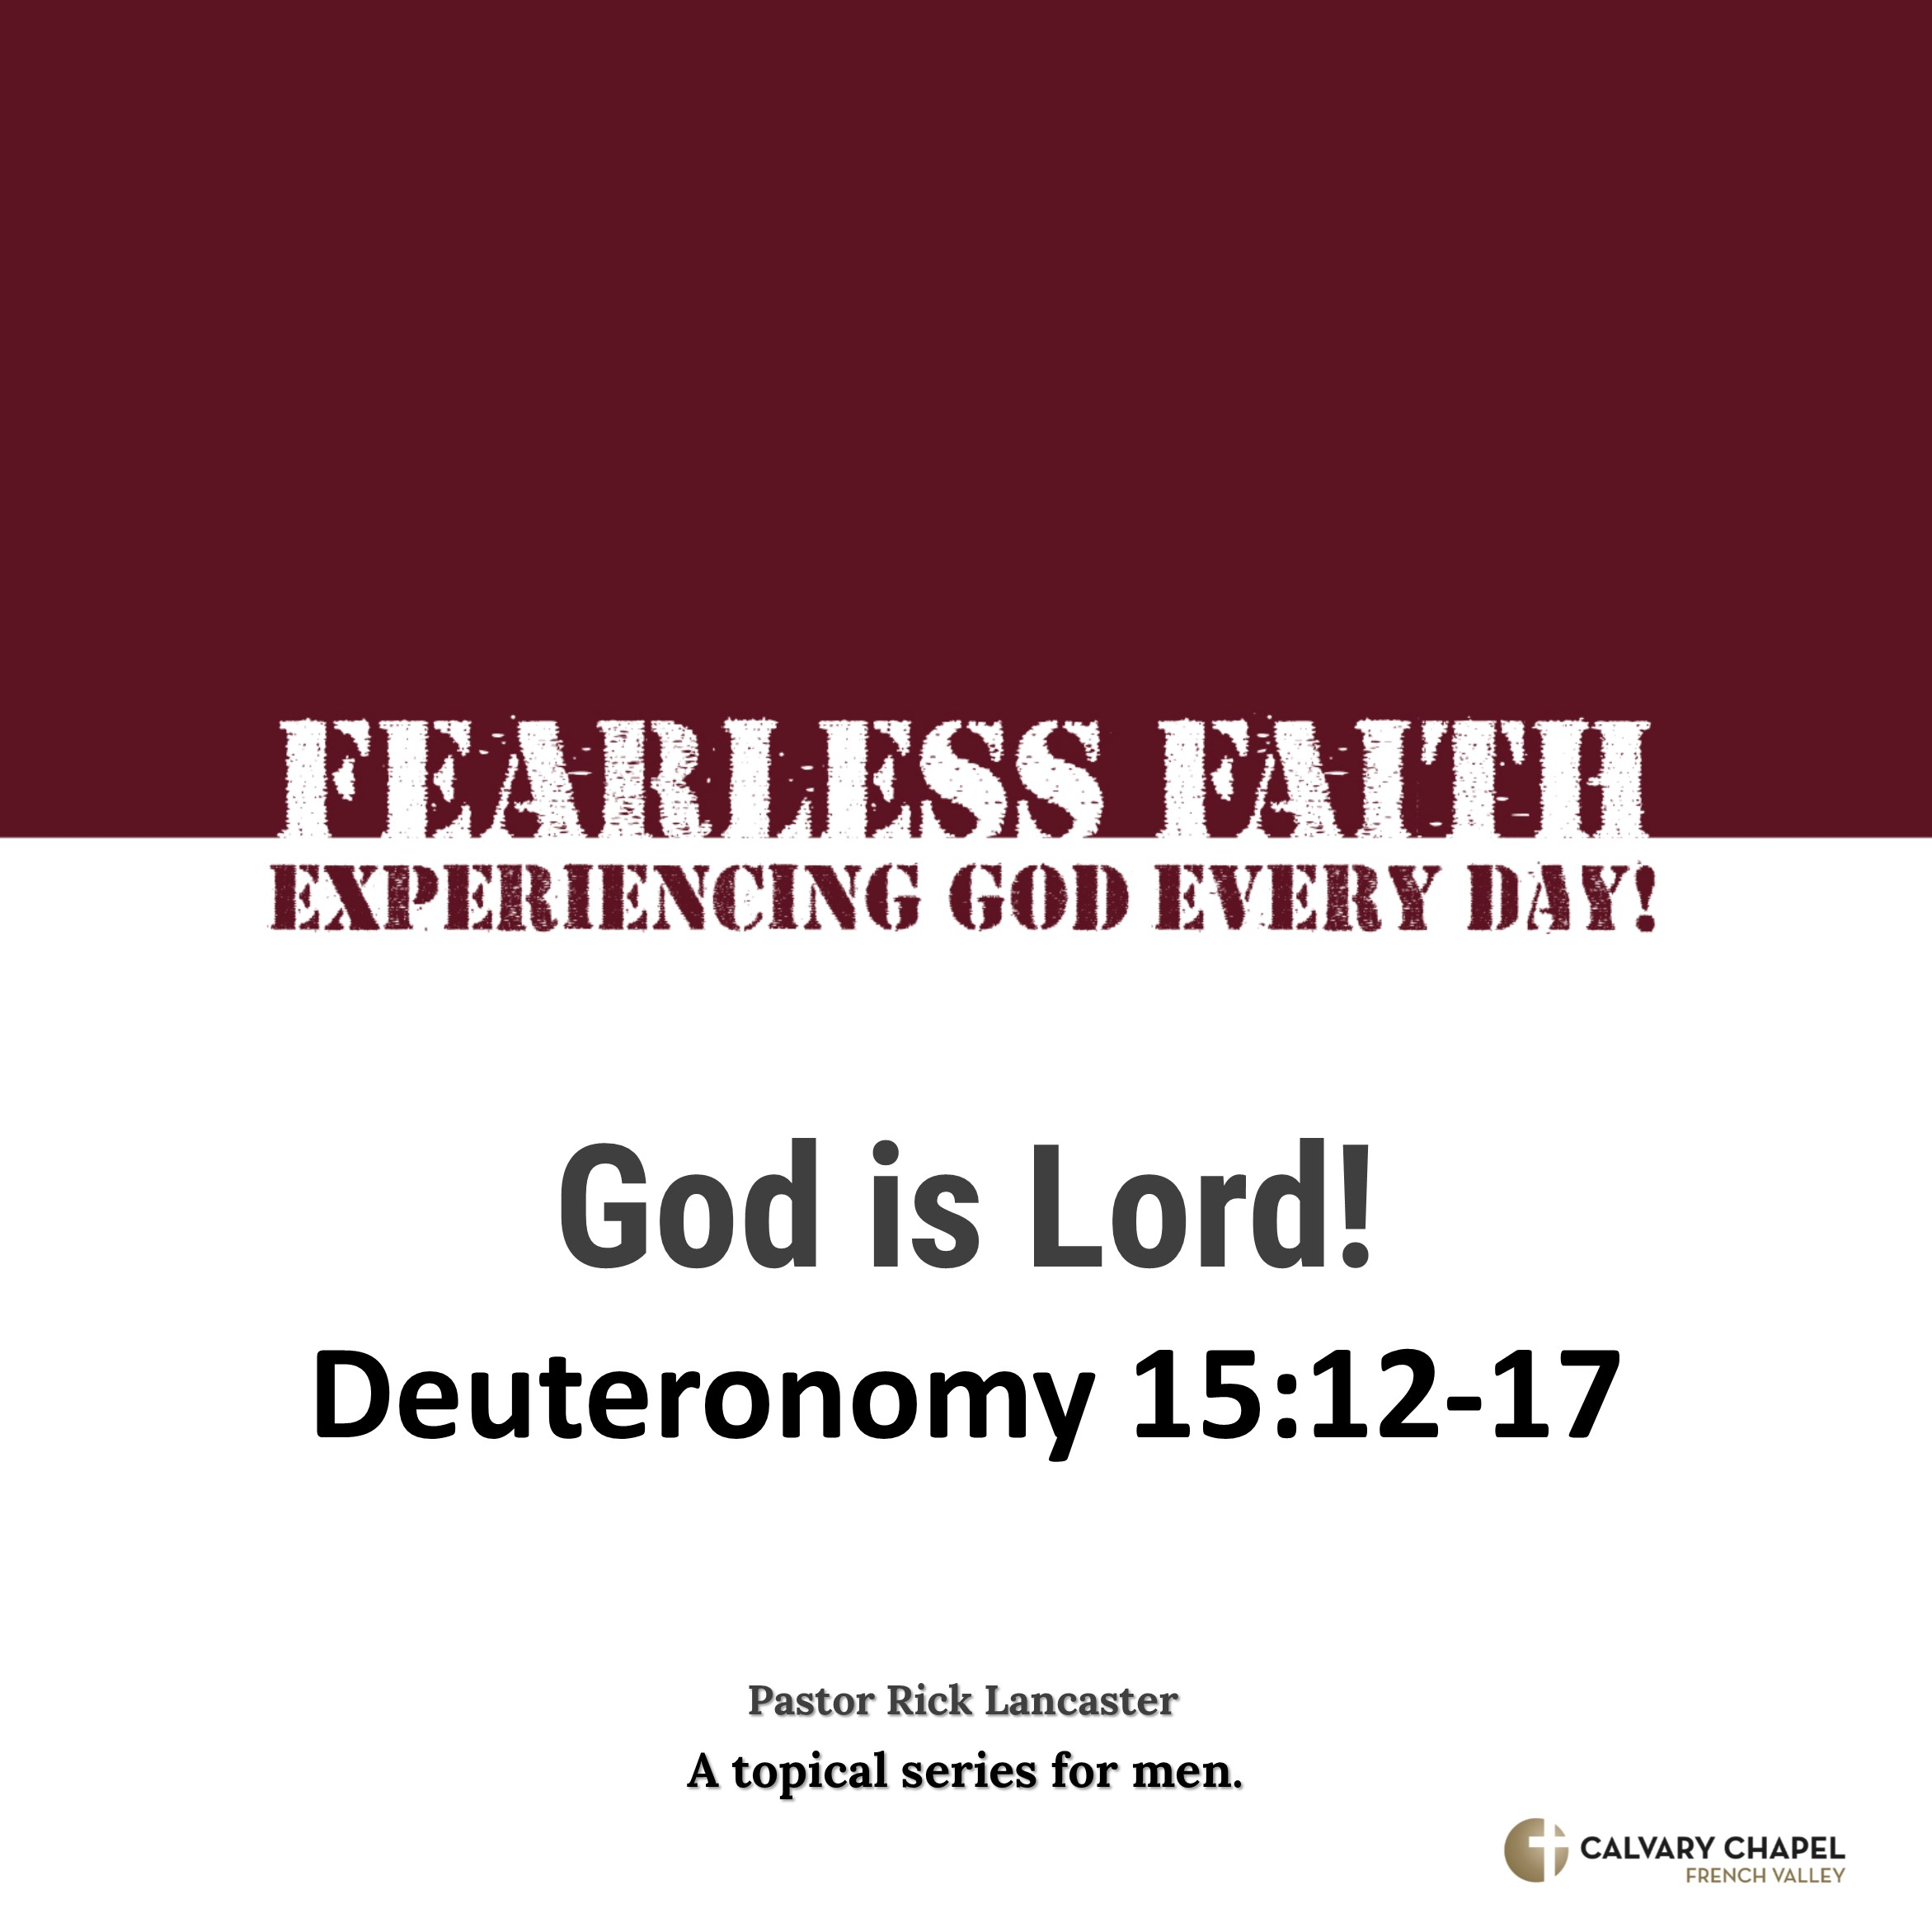 God is Lord! – Deuteronomy 15:12-17